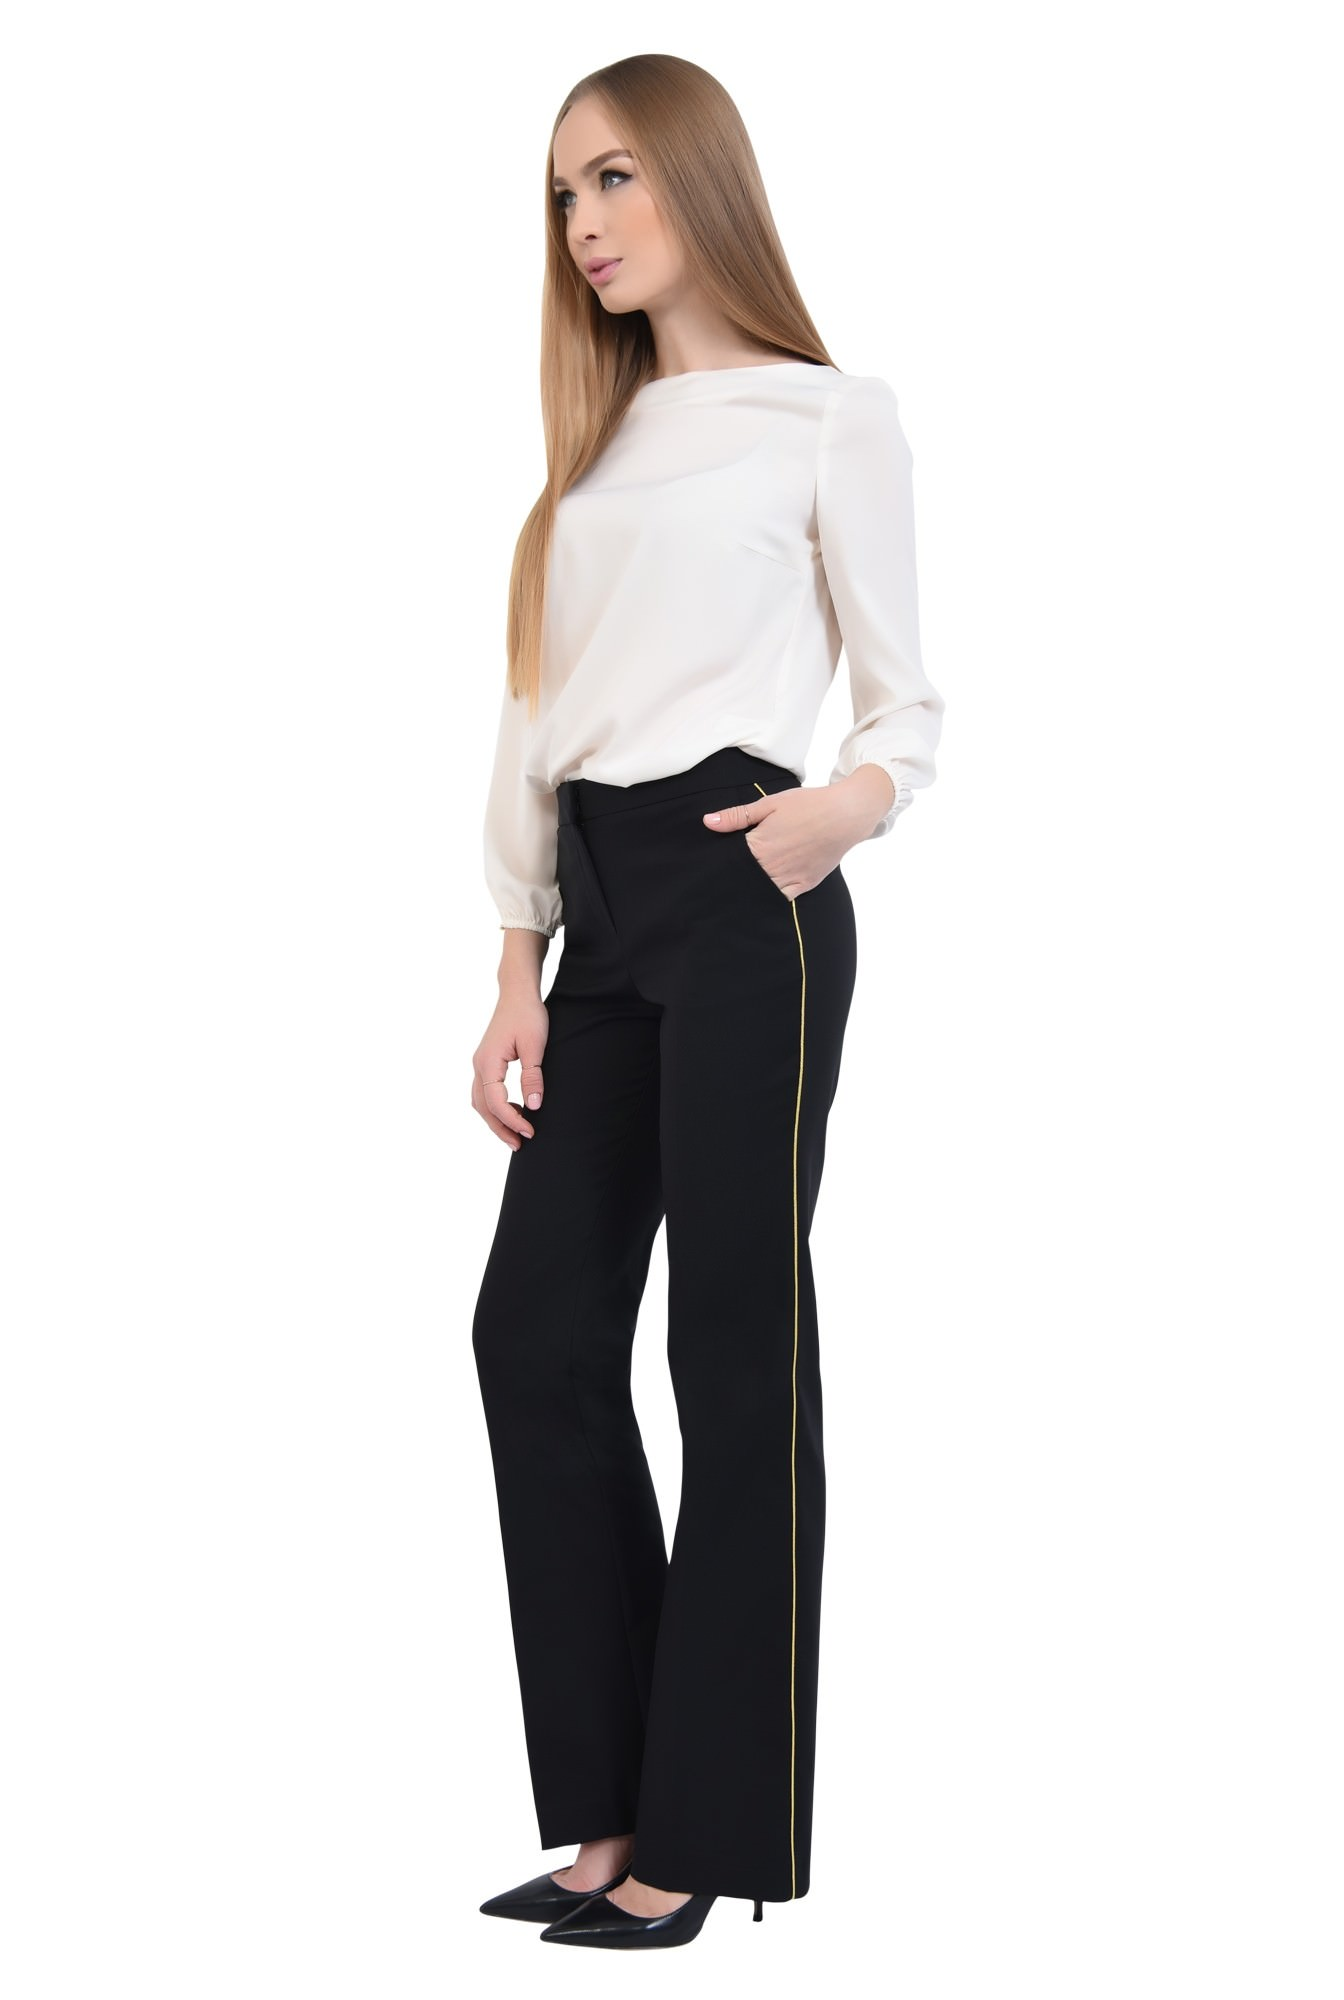 0 - PANTALON OFFICE PT 192-NEGRU